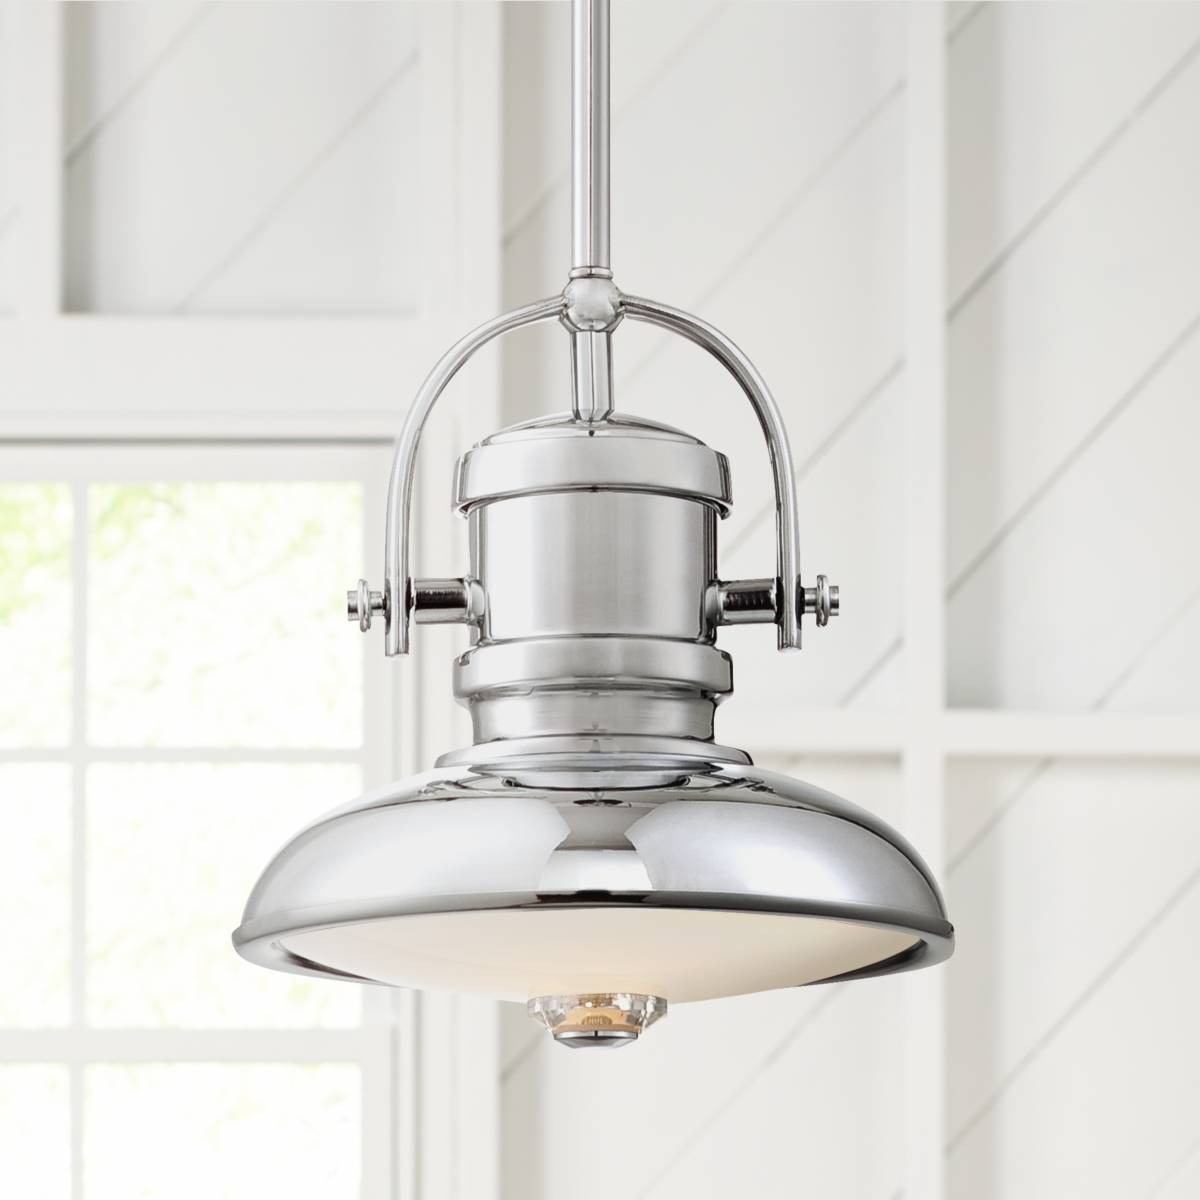 Clearance Light Fixtures & More For